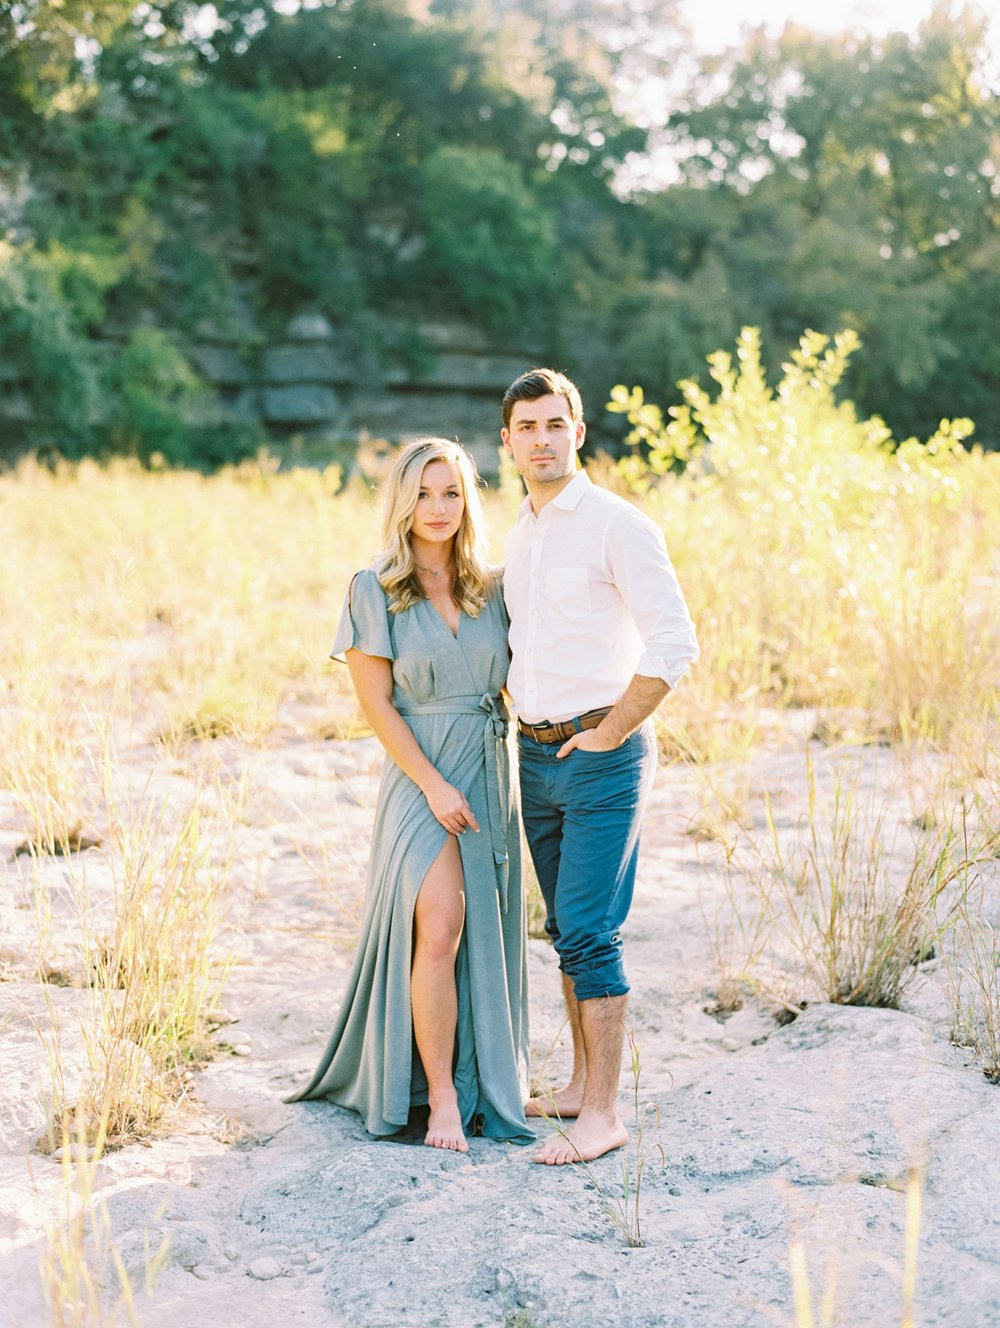 Becca Lea Photography, Fine art film wedding photographer, Contax 645, Portra 400, Austin Engagement Photographer, Bull Creek Engagement, Austin Wedding Photographer, Fine Art photographer Austin, Lulus dress, Fine Art Engagement, Destination Wedding photographer, Destination weddings